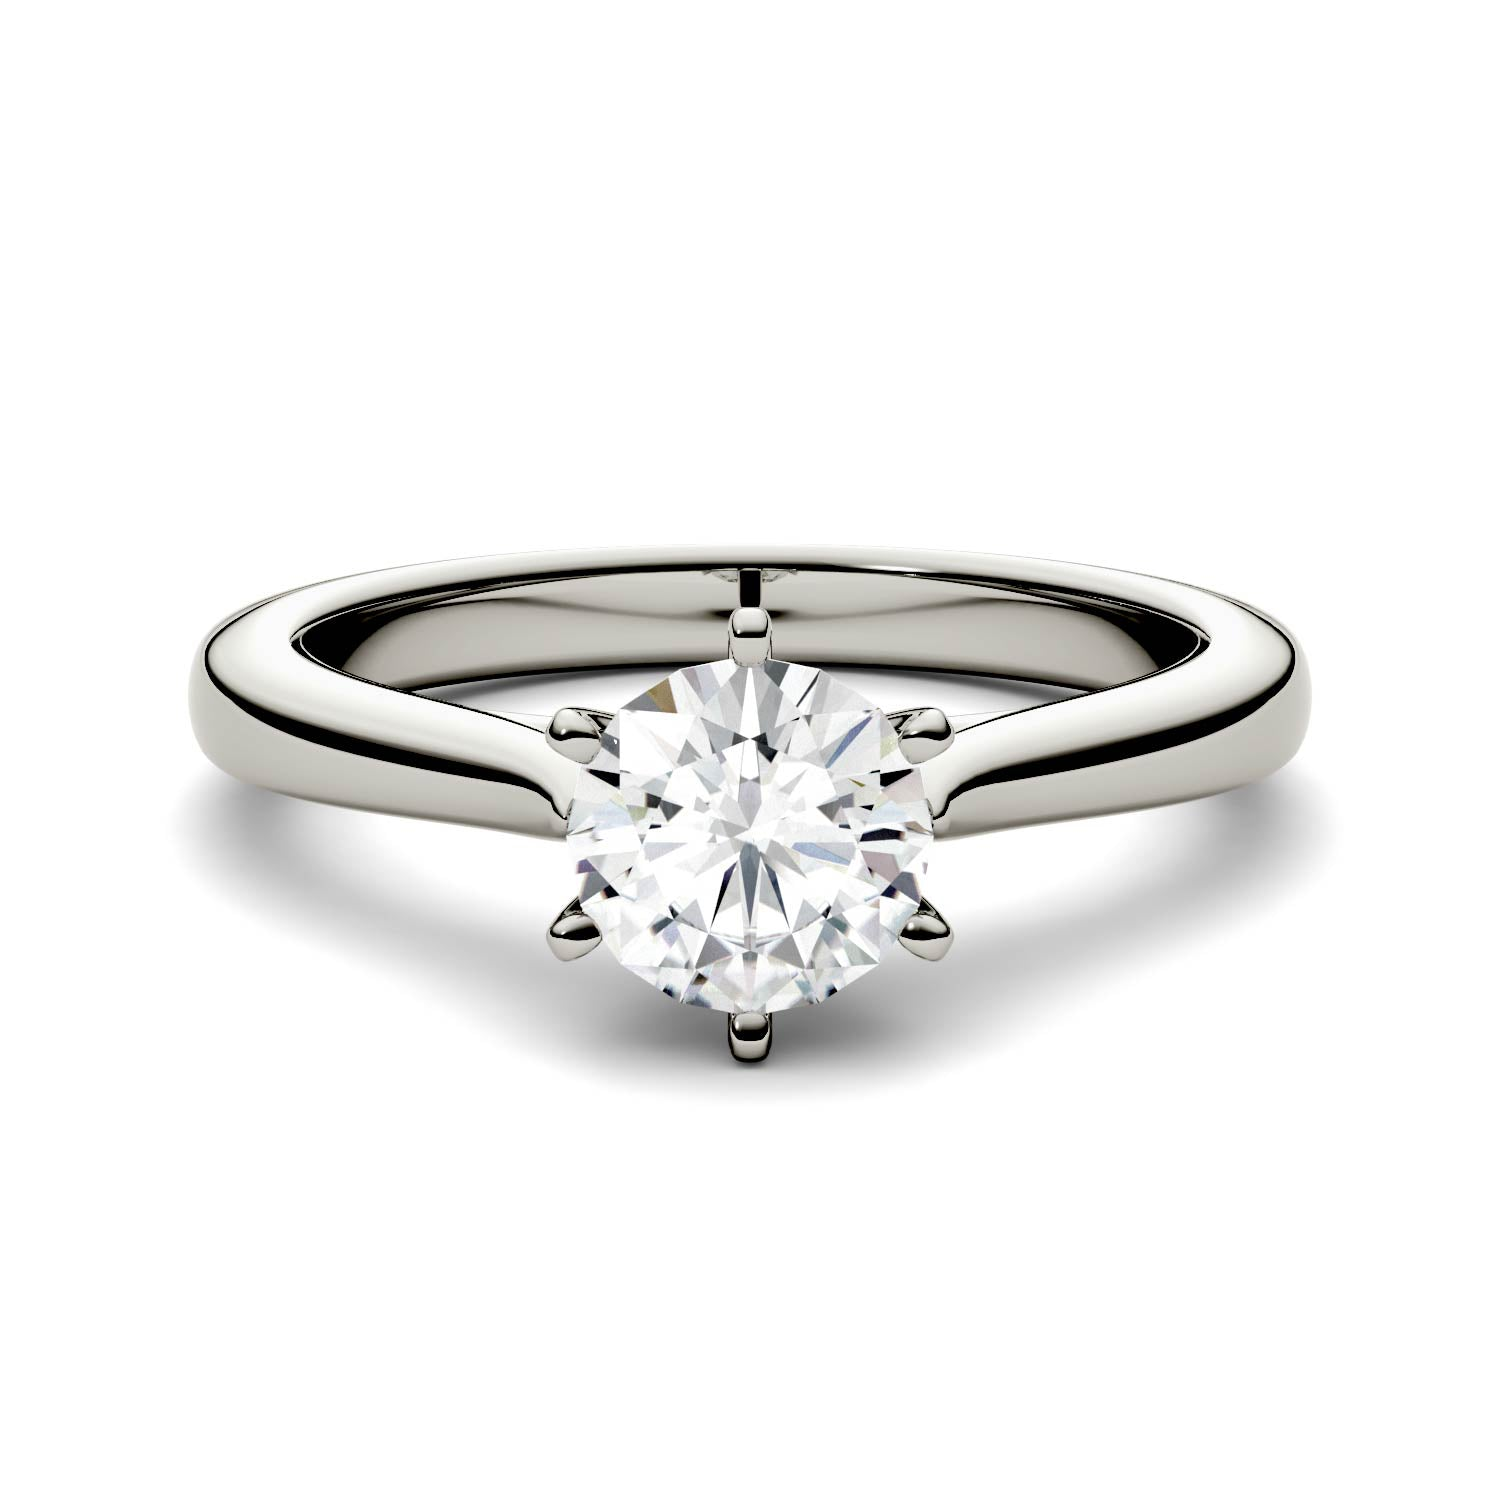 6.5mm Charles & Colvard Round Moissanite Solitaire Engagement Ring - Jewelry by Johan